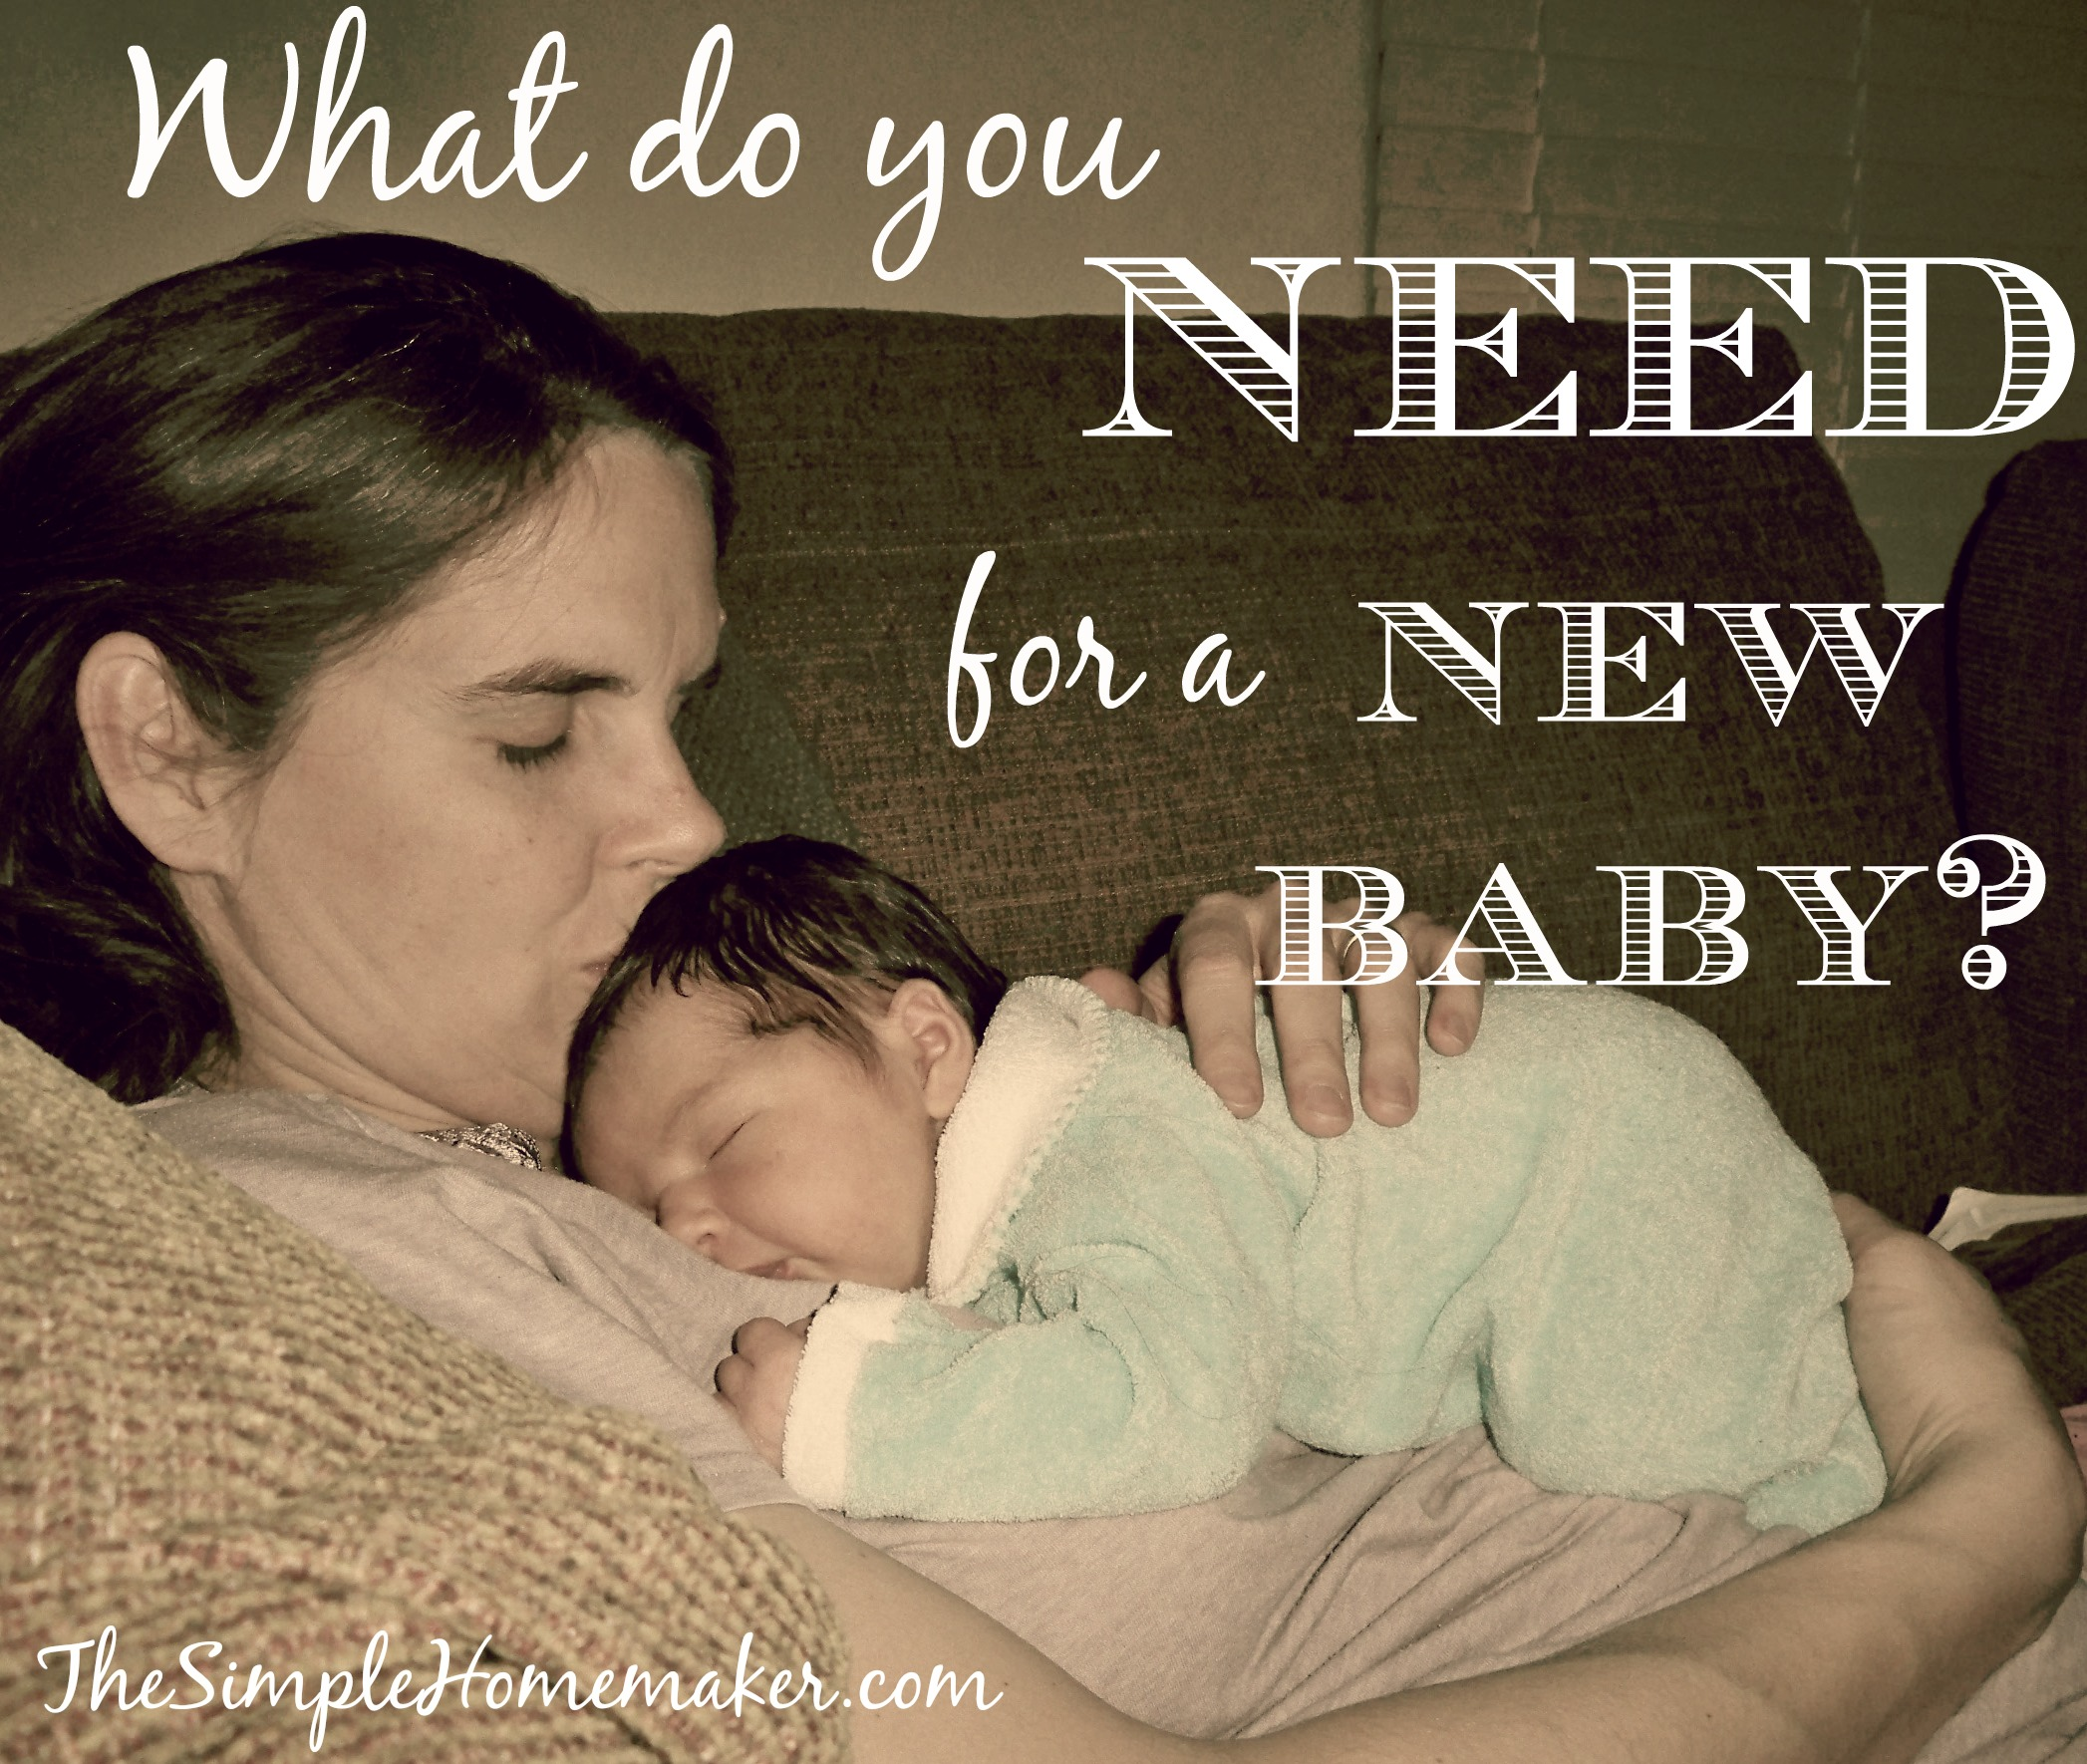 What do you NEED for a new baby...besides the ability to survive on 30-second increments of sleep?